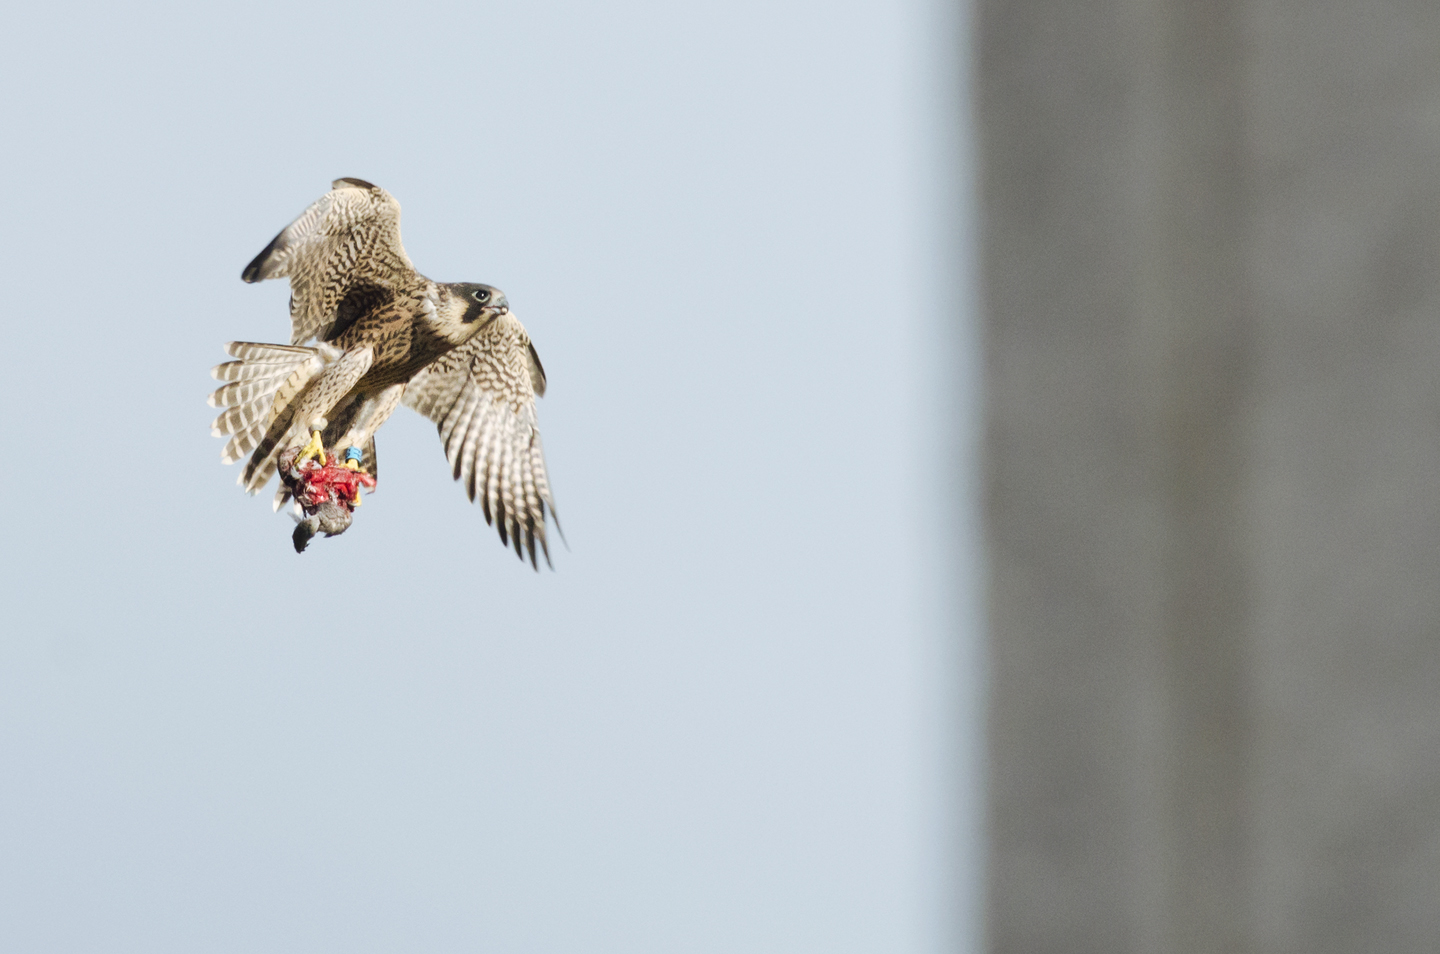 Juveniles can struggle to carry prey, even when butchered into small pieces by their parents, and will often drop it mid-flight